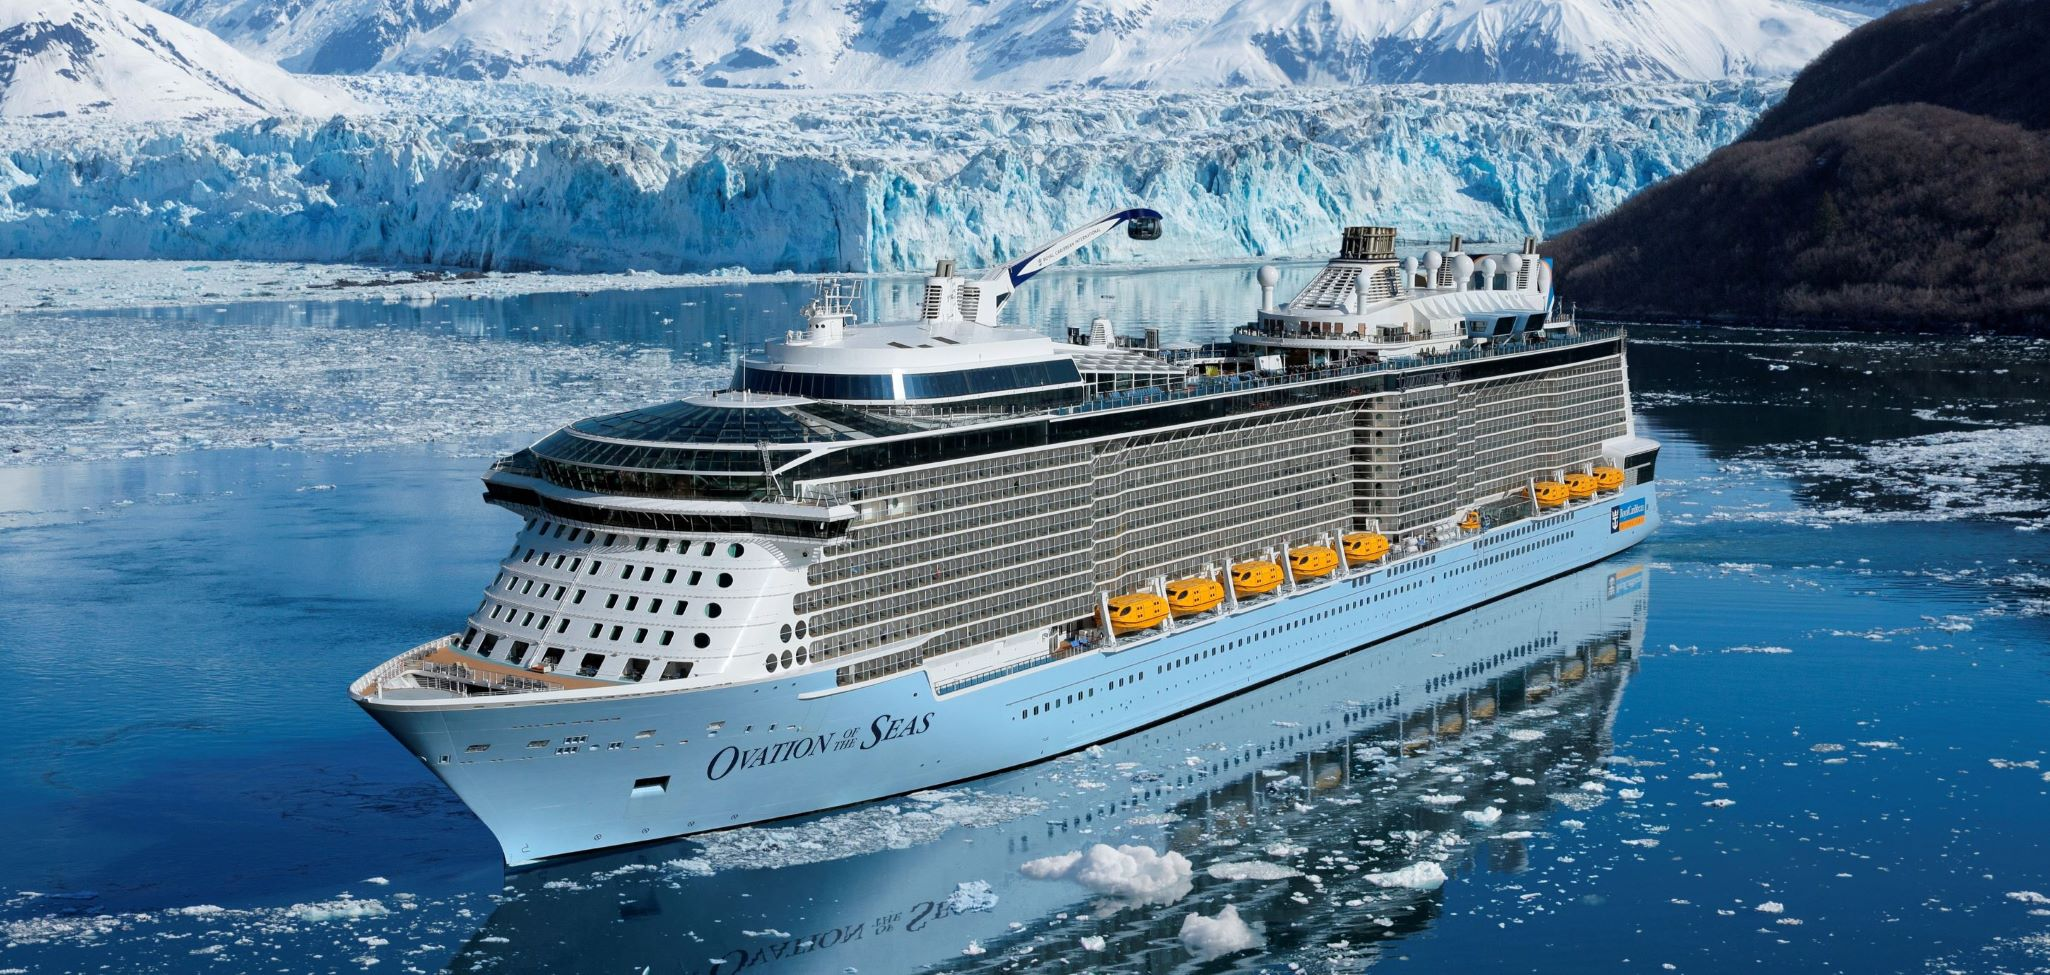 Royal Caribbean's <em>Ovation of the Seas</em>